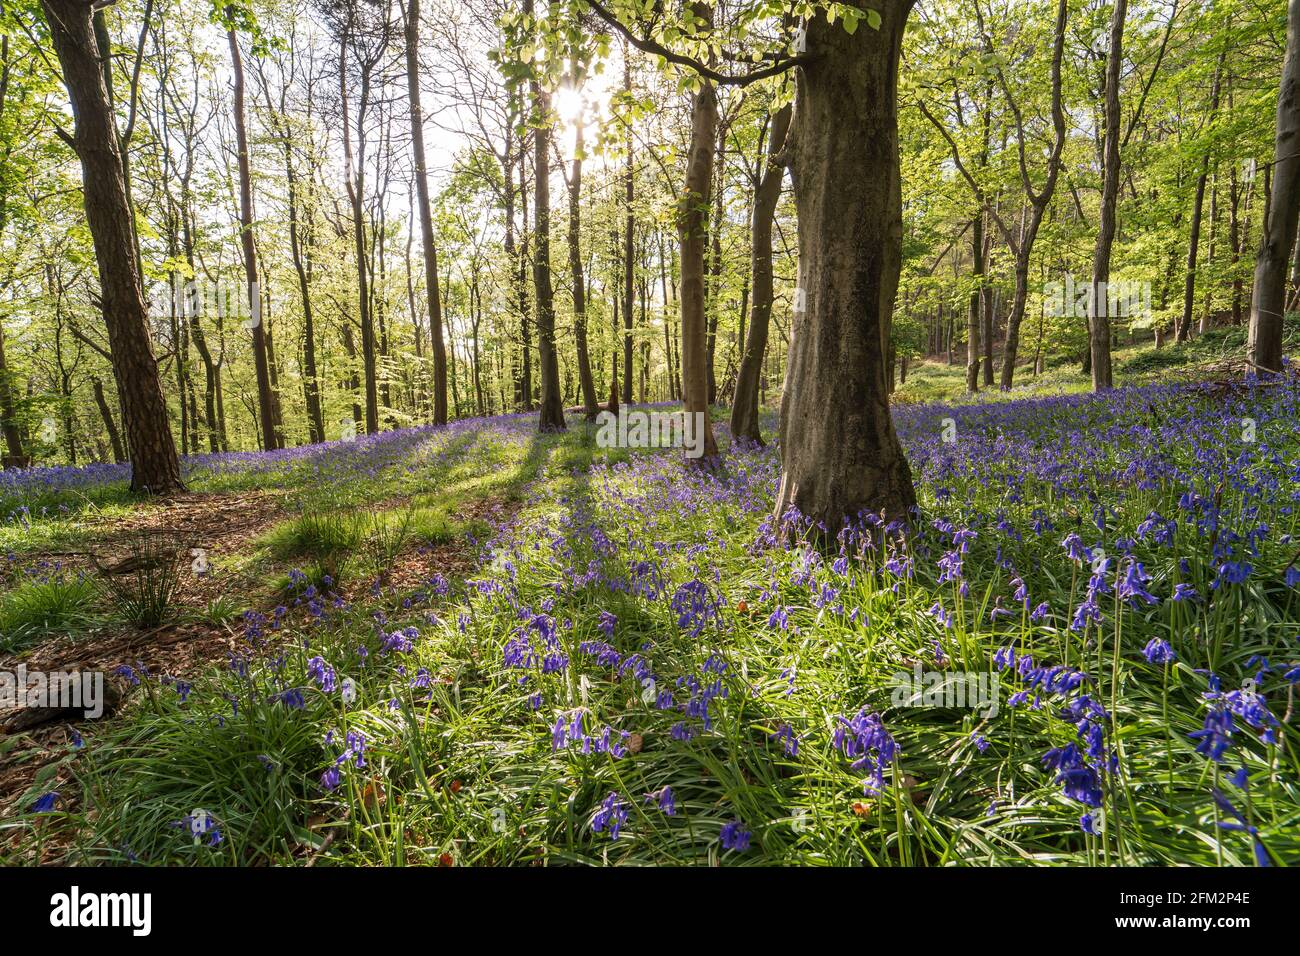 Bluebells in Graig Fawr Woods near Margam Country Park on sunset, Port Talbot, South Wales, United Kingdom Stock Photo